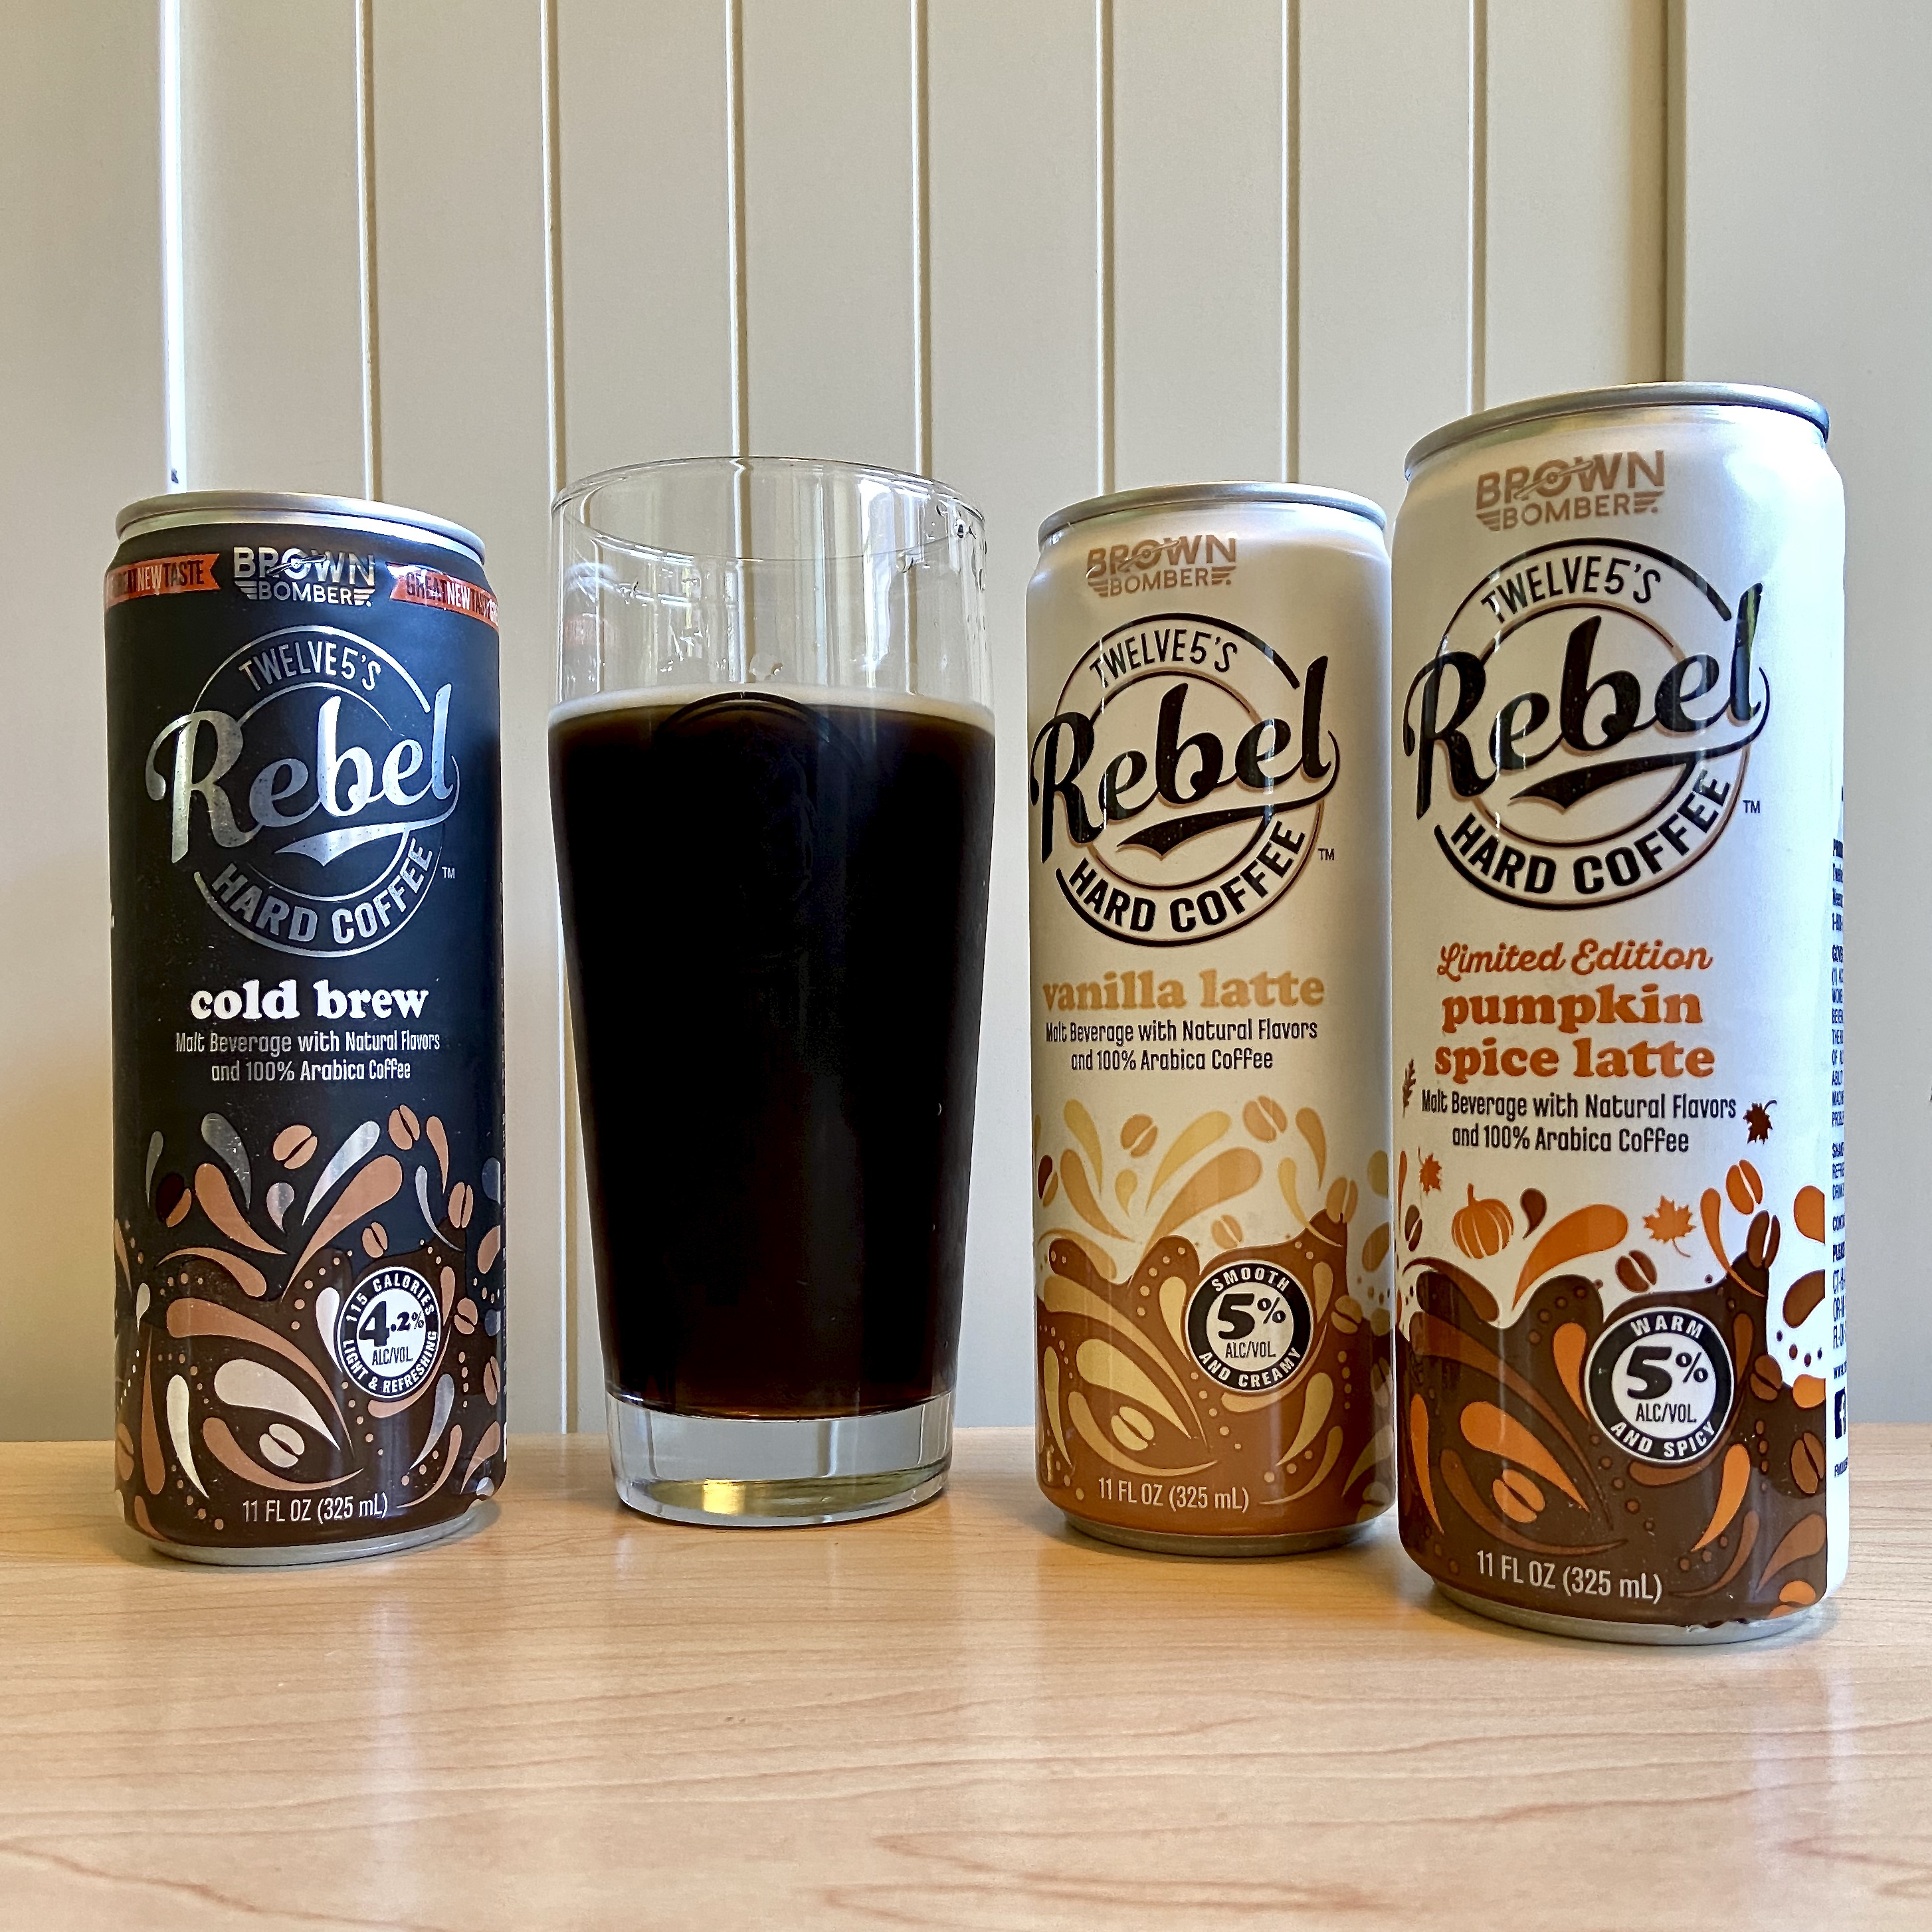 Twelve5 Beverage Co. Rebel Hard Coffee lineup of flavors that includes Hard Cold Brew, Vanilla Latte, and the Limited Edition Pumpkin Spice Latte. Not pictured is Mocha Hard Latte.